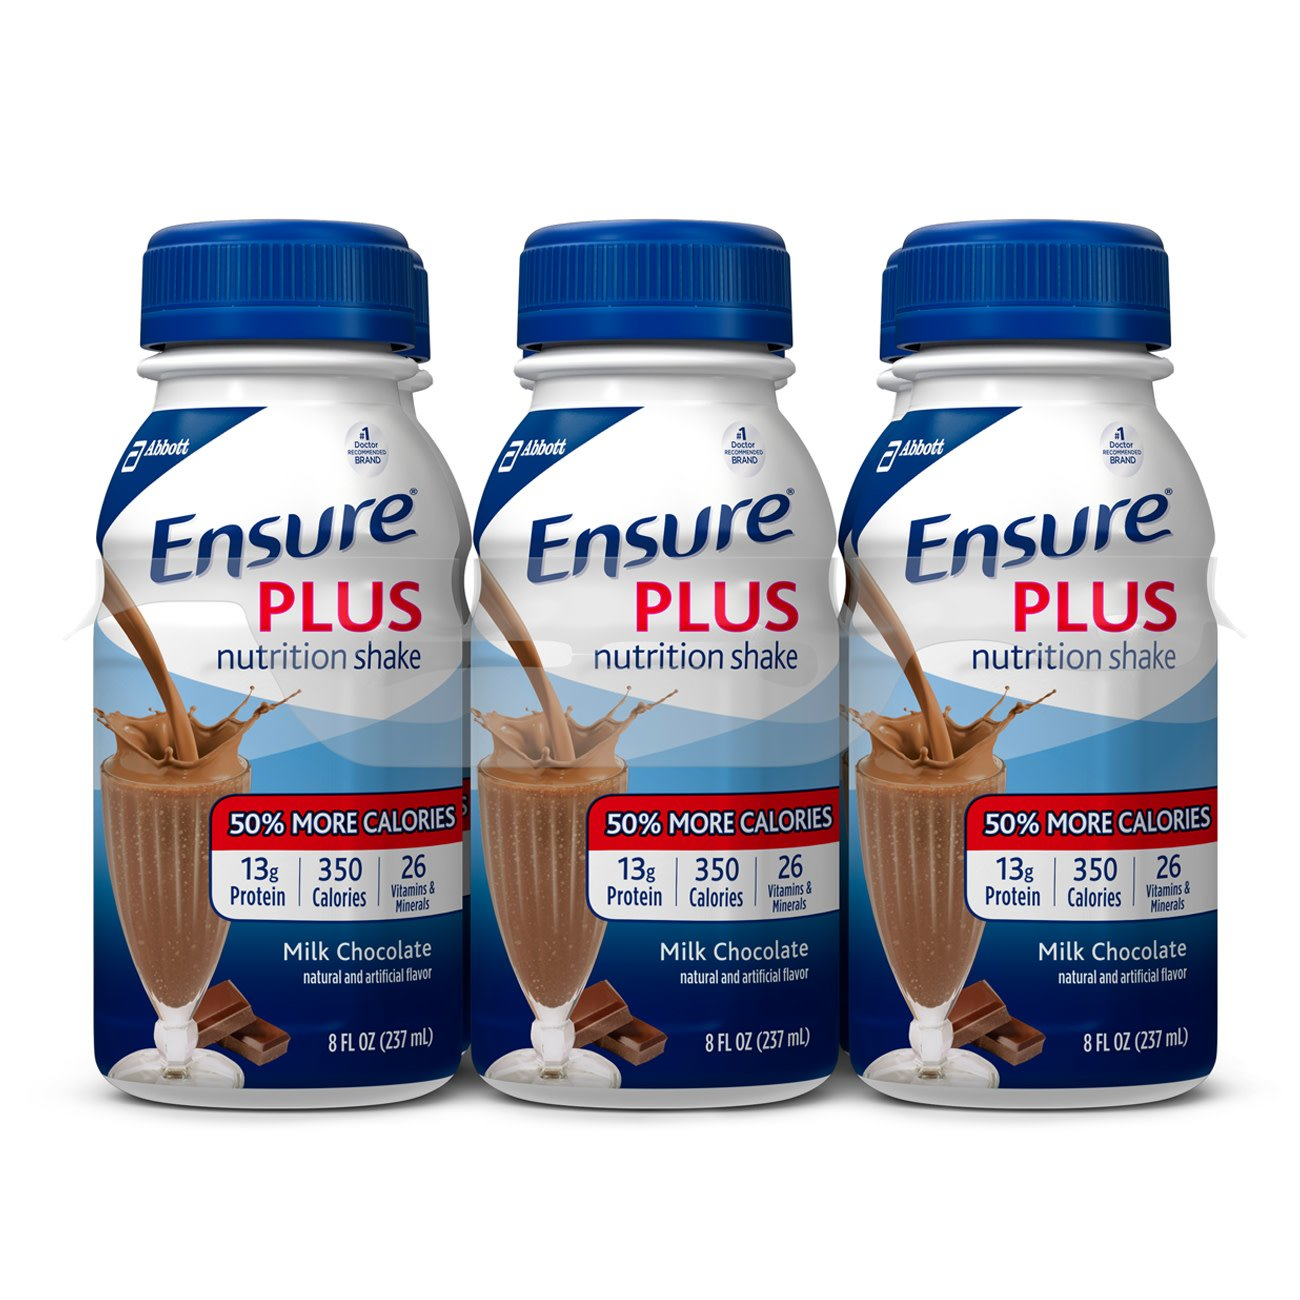 Ensure Plus Milk Chocolate Flavor 8 oz. Bottle Ready to Use, 57266 - Pack of 6